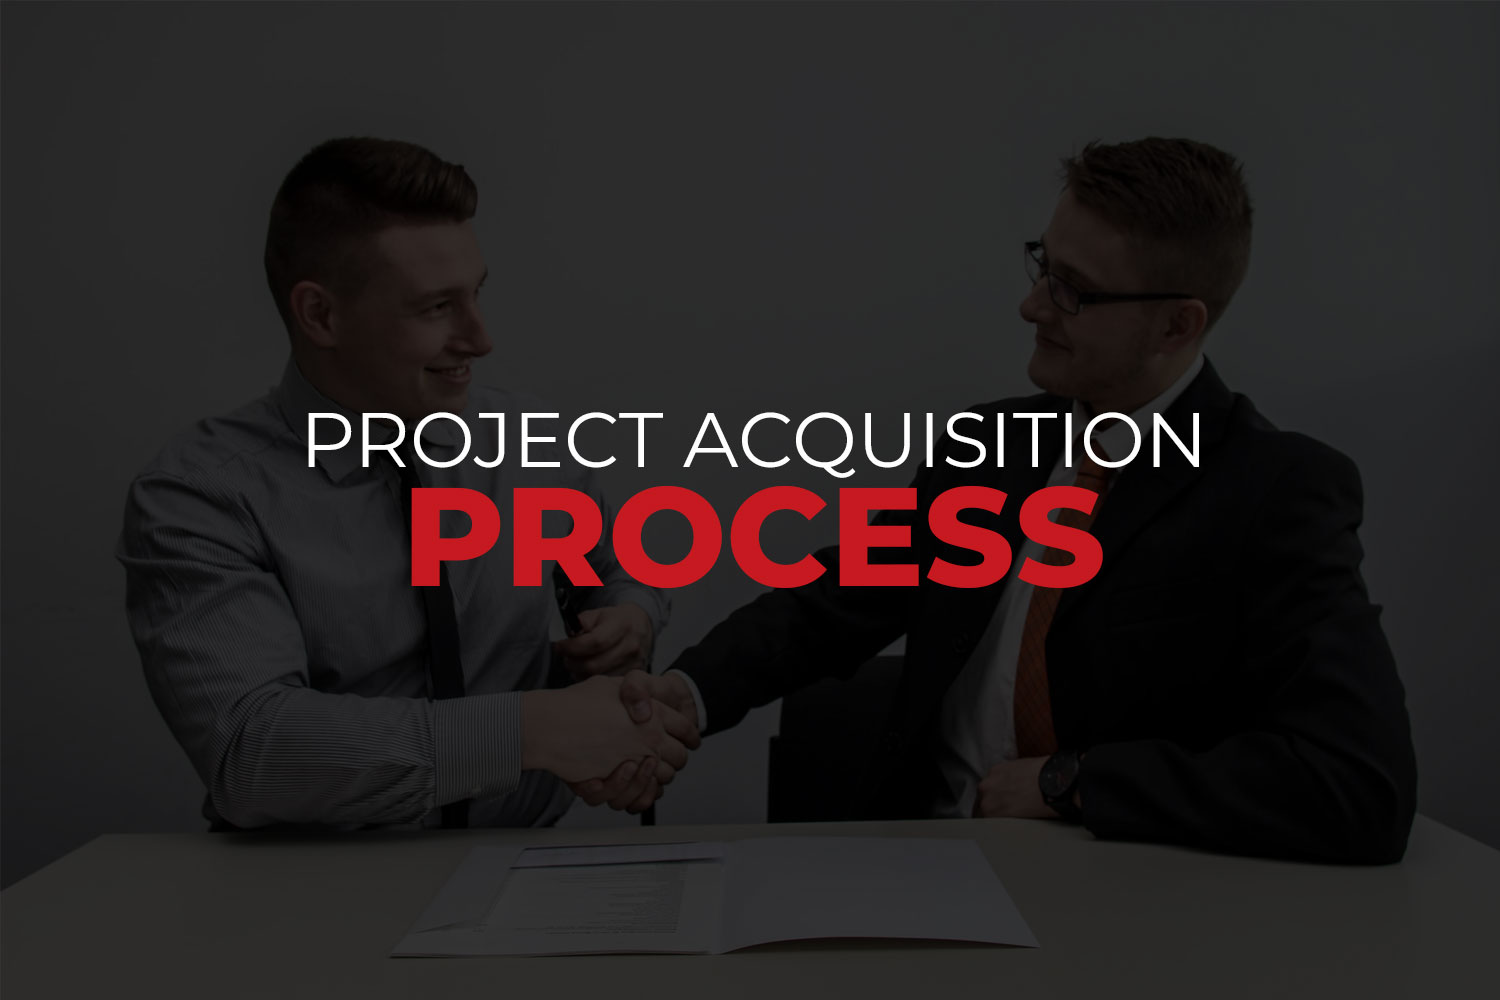 Project Acquisition With Momentum